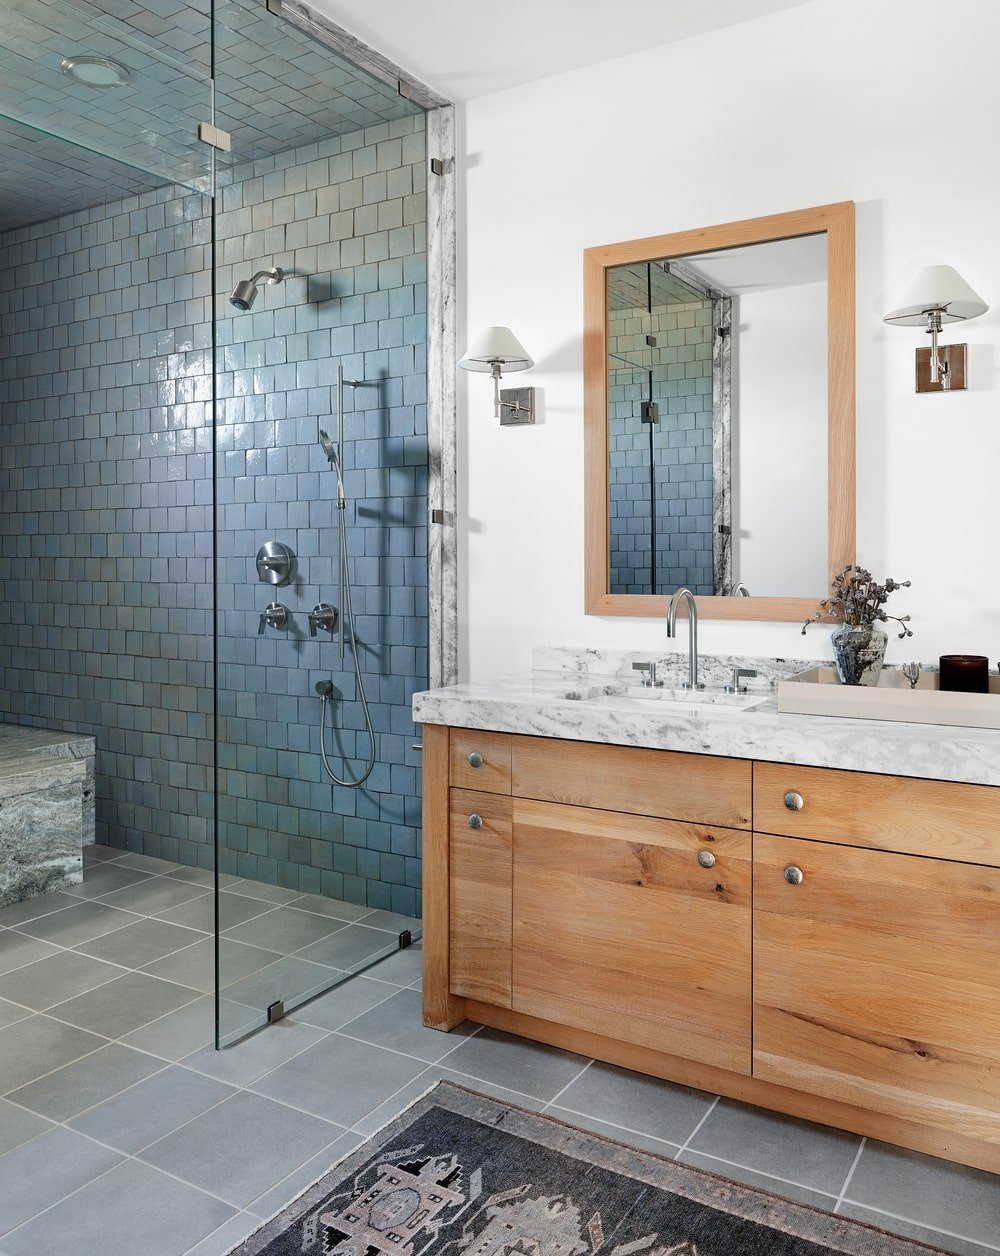 This si a simple bathroom with a wooden vanity topped with a matching mirror beside the glass-enclosed shower area with dark tiles.